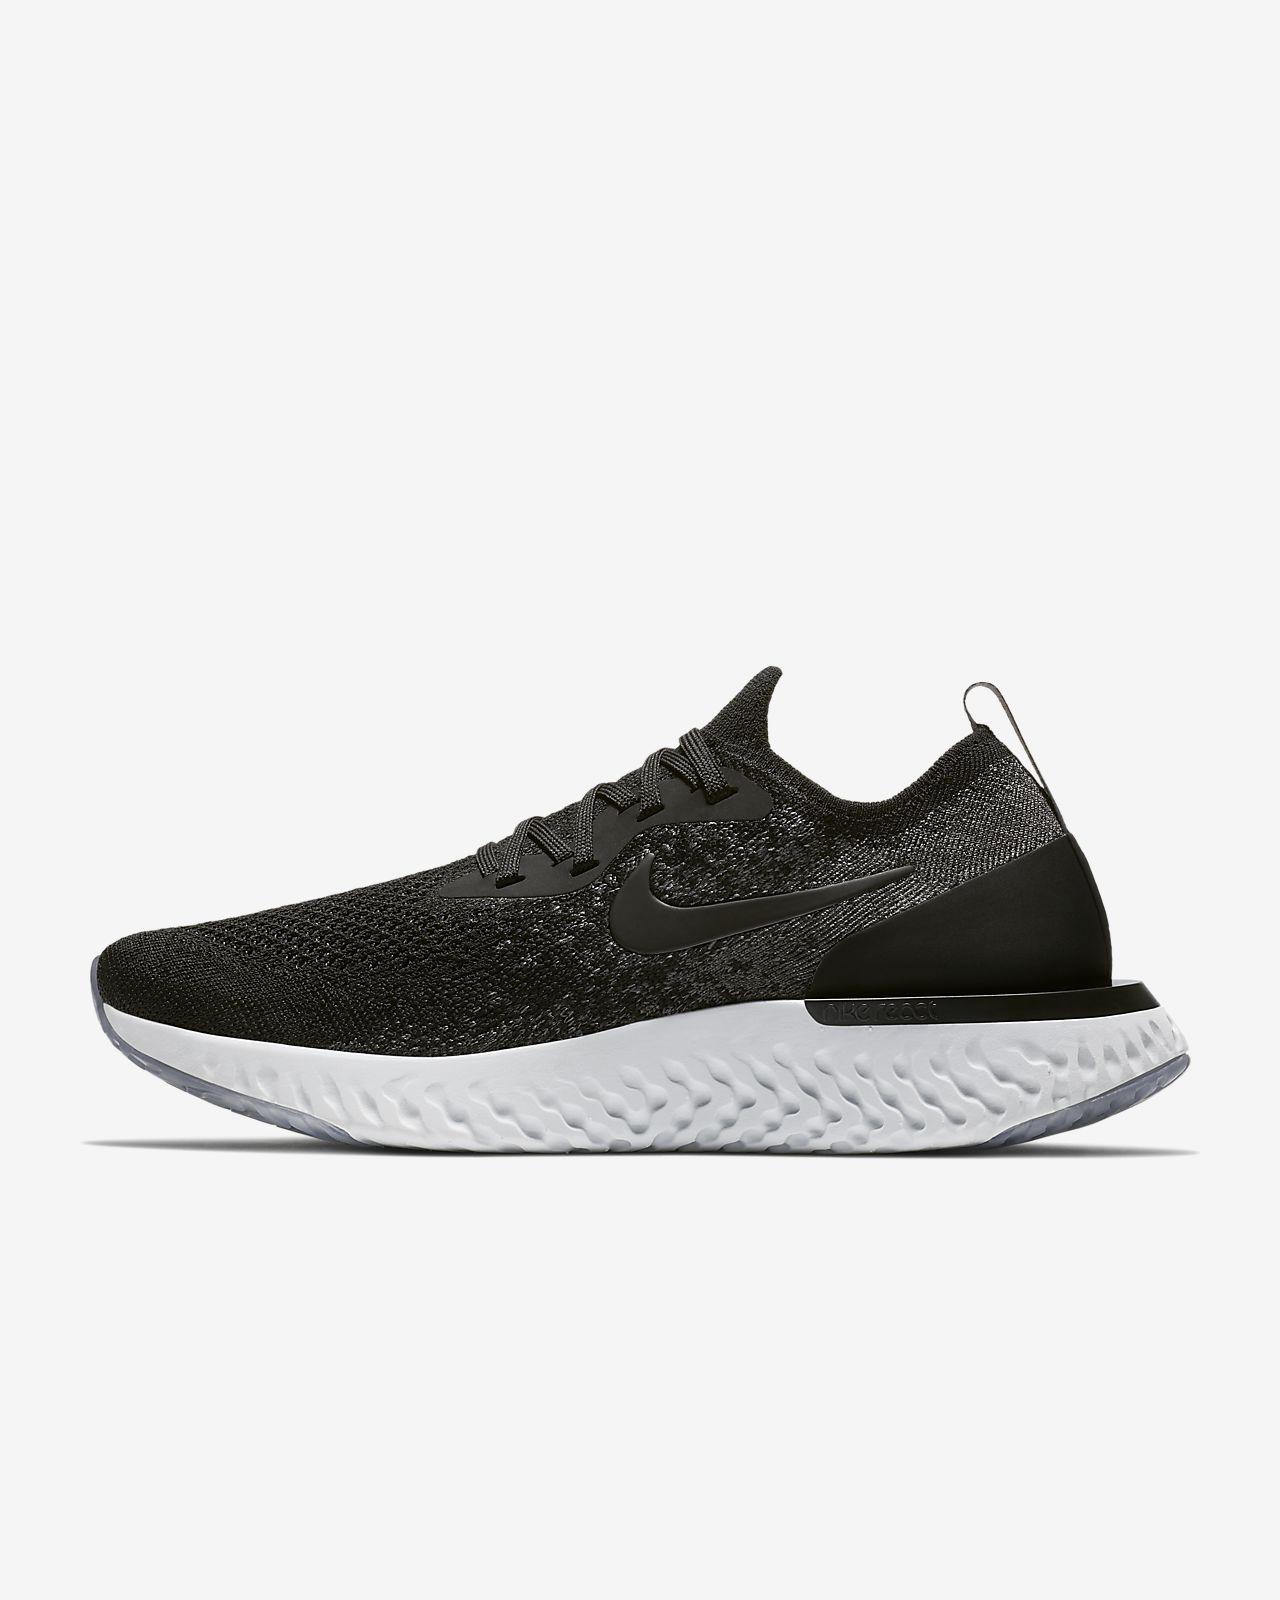 ... Nike Epic React Flyknit Women's Running Shoe